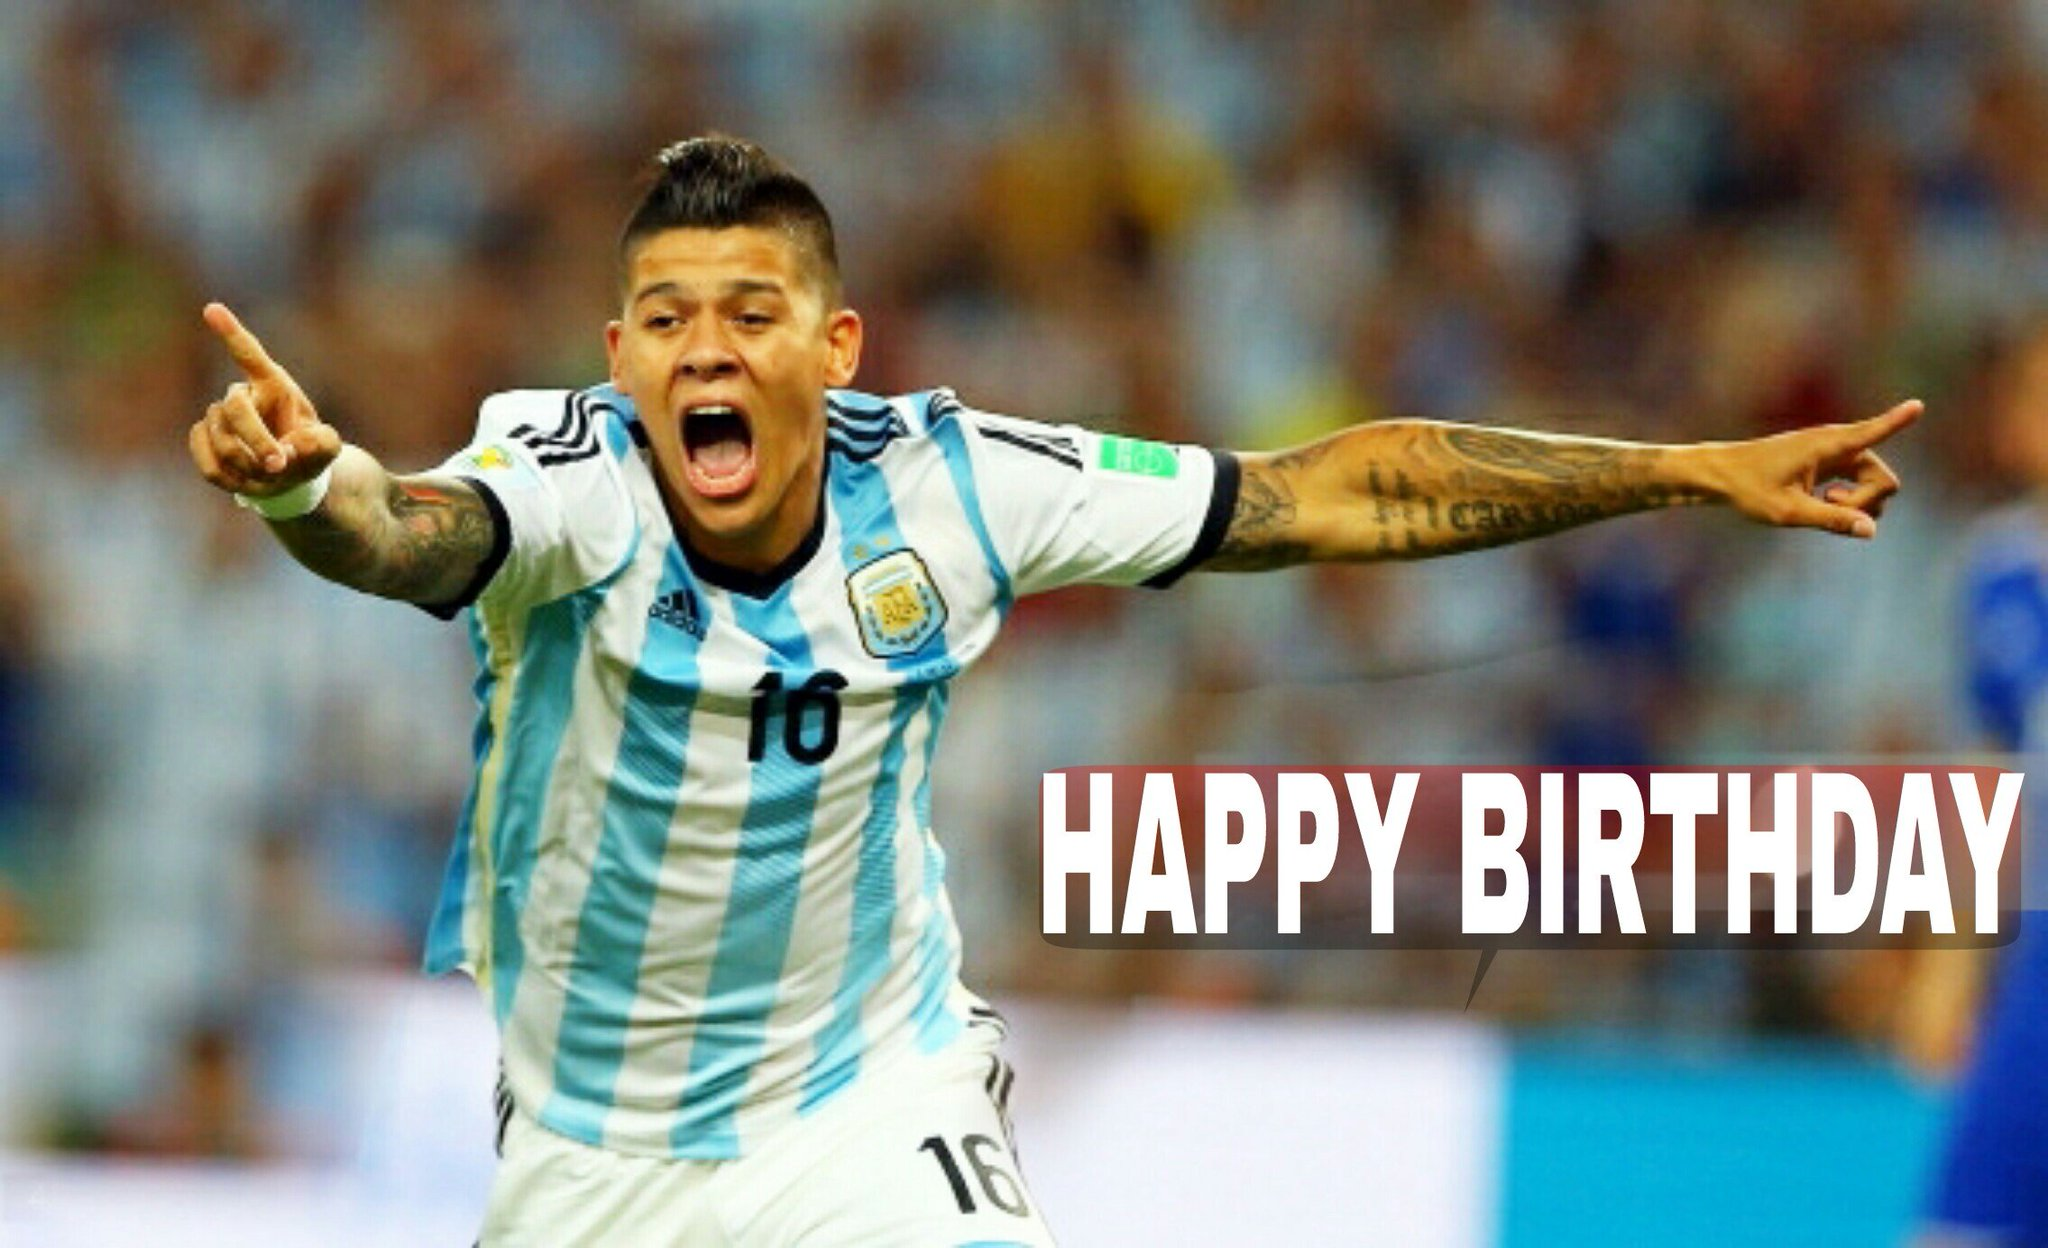 Happy birthday to  left back Marcos Rojo, He turns 27 today.